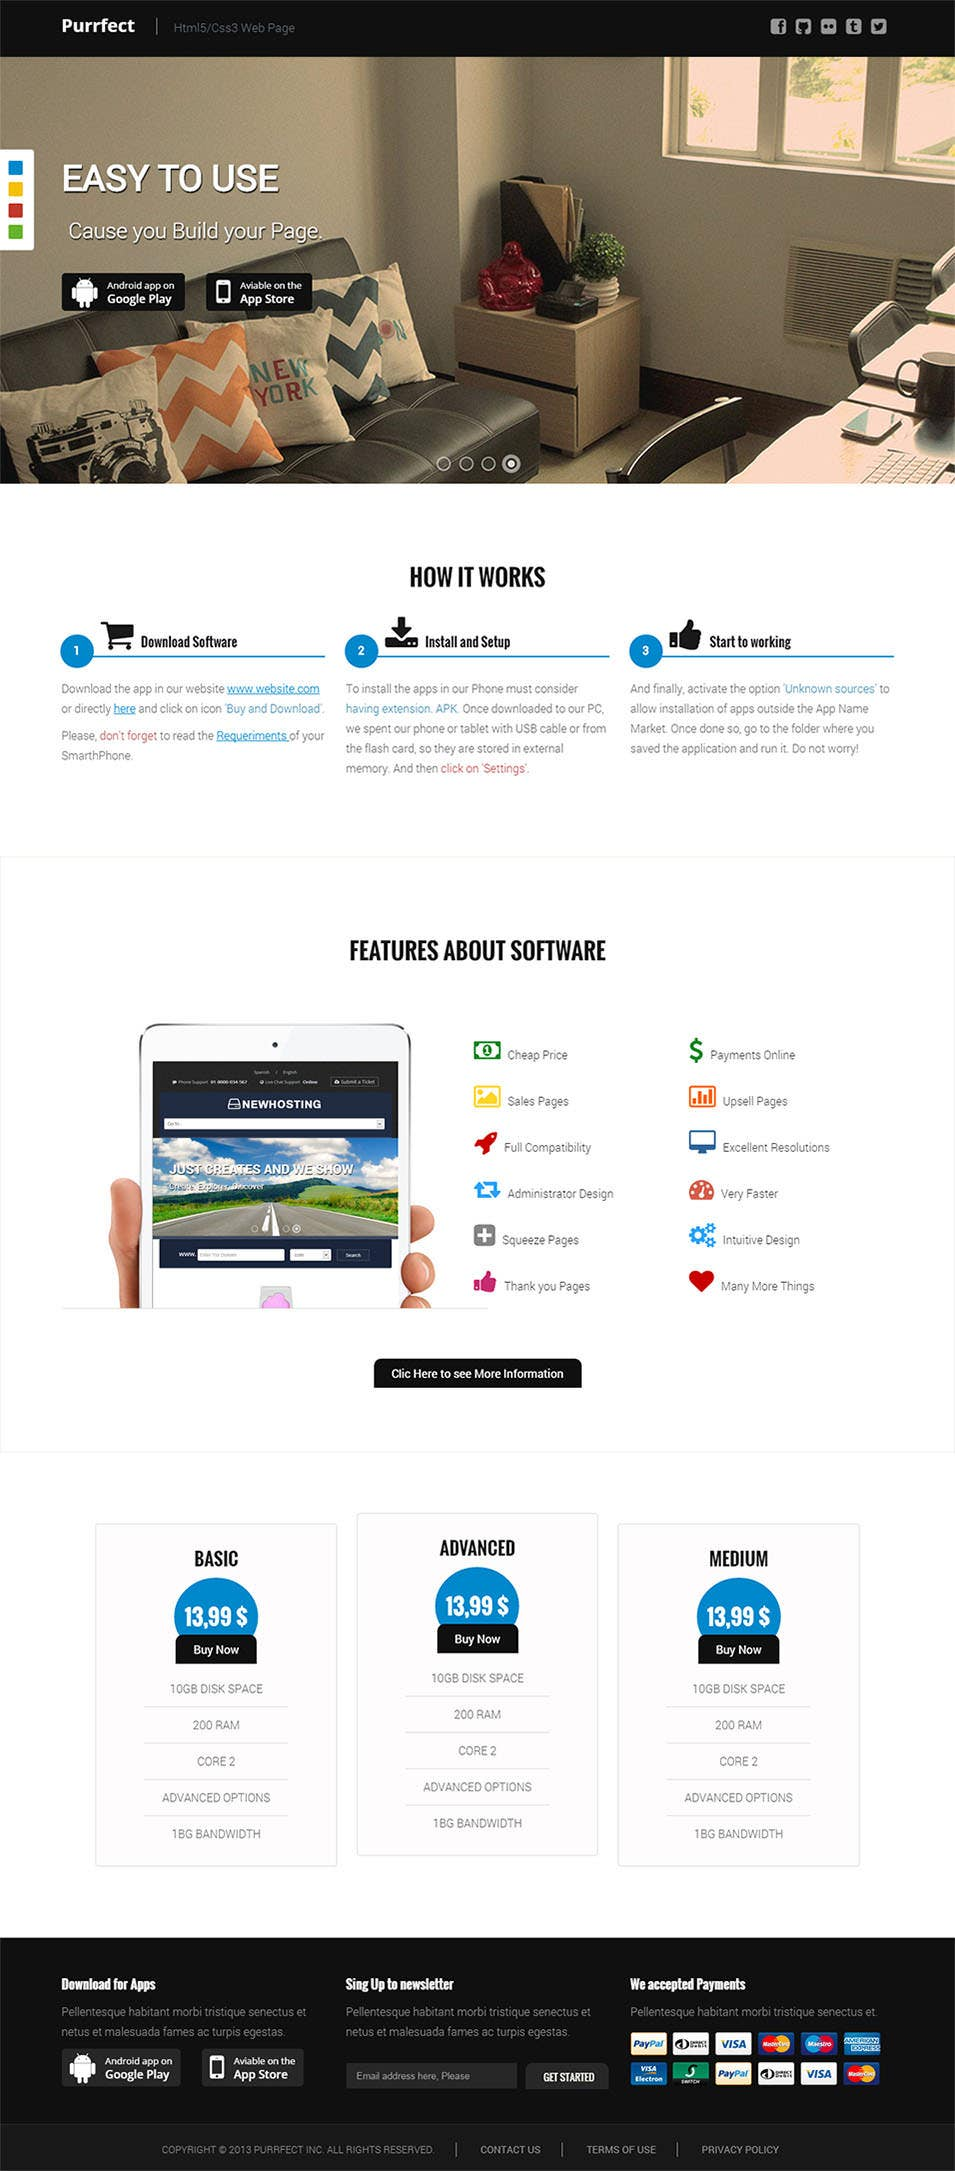 purrfect responsive html5 css3 software landing page